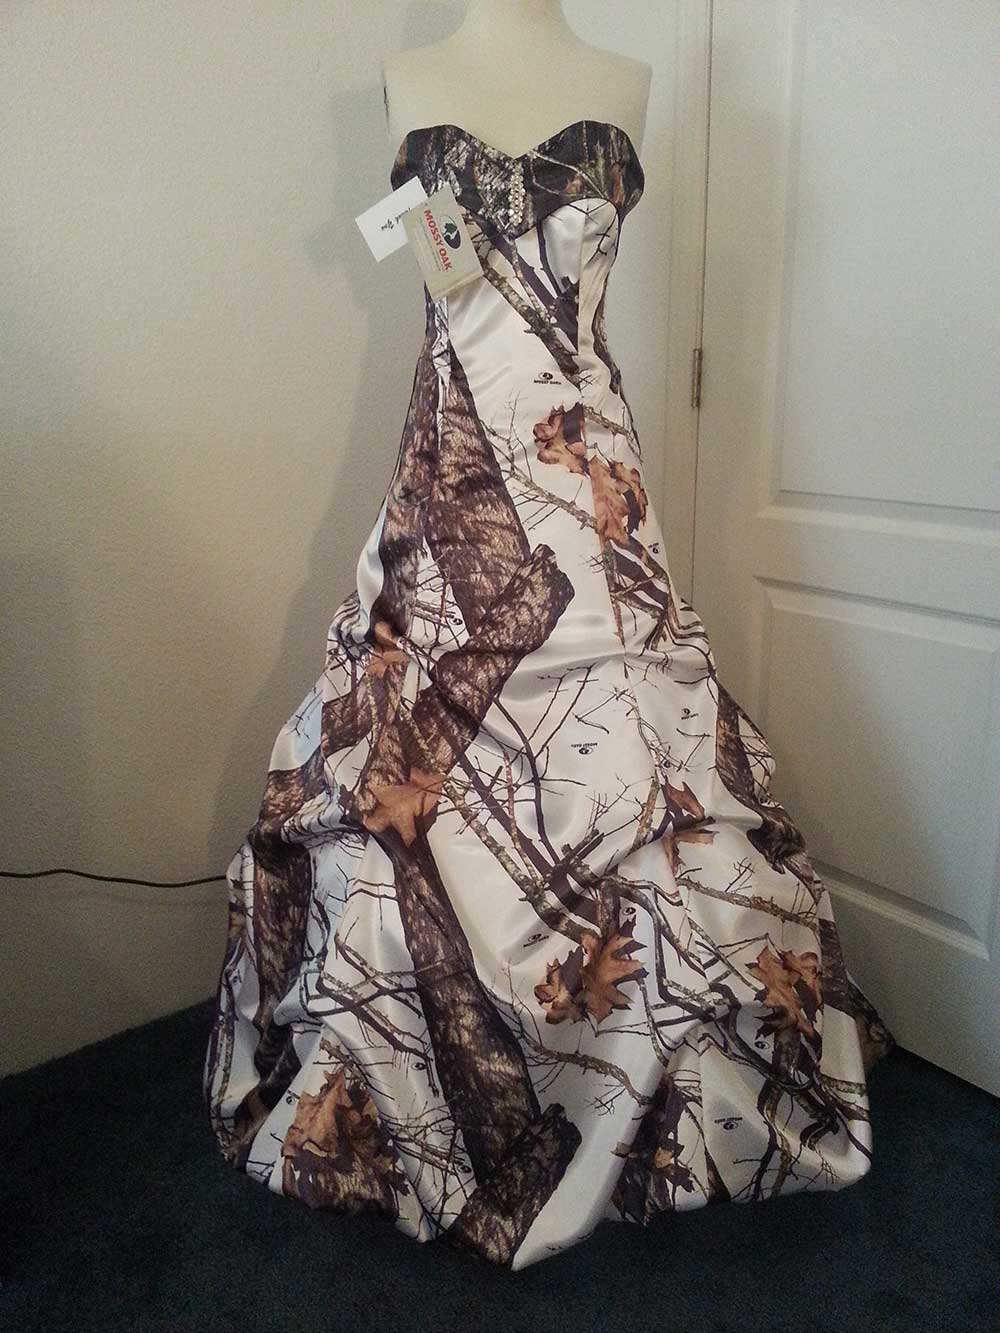 ATOC-32 Courtney Full Front Mossy Oak Winter-(2) Camo Gown (image)